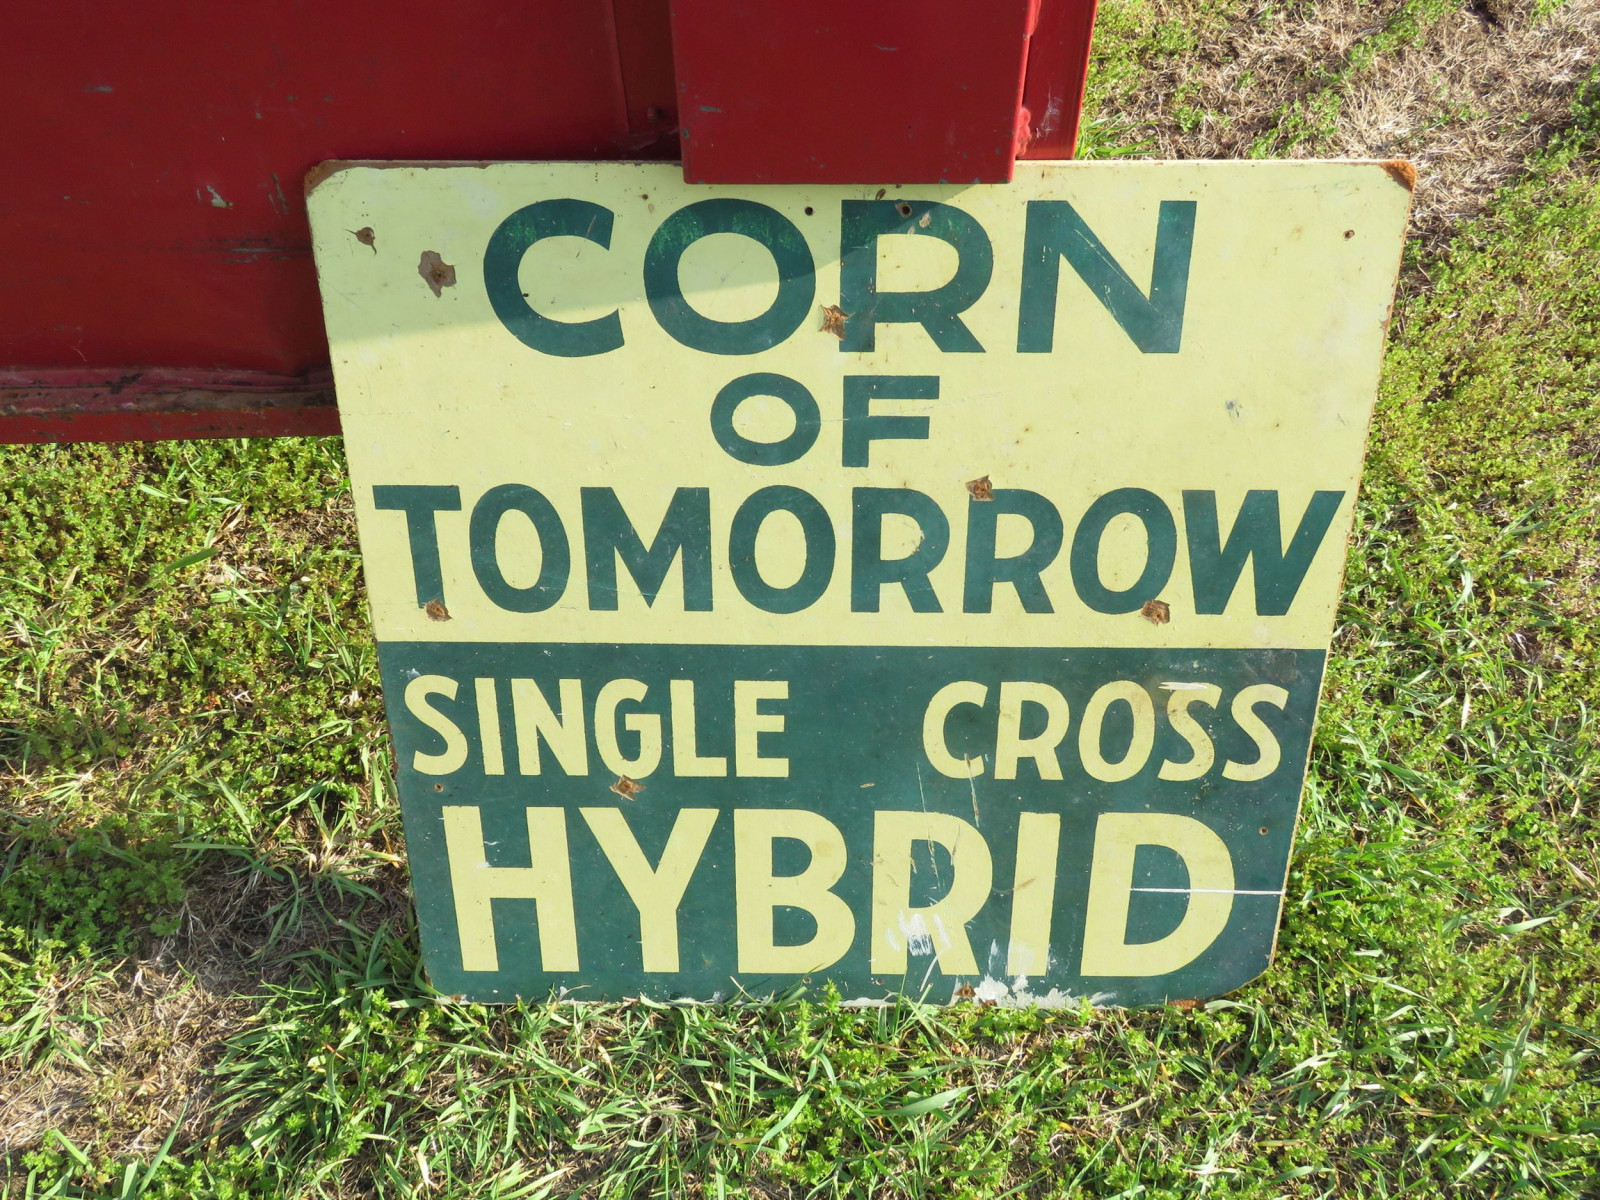 Corn of tomorrow Sign - Image 1